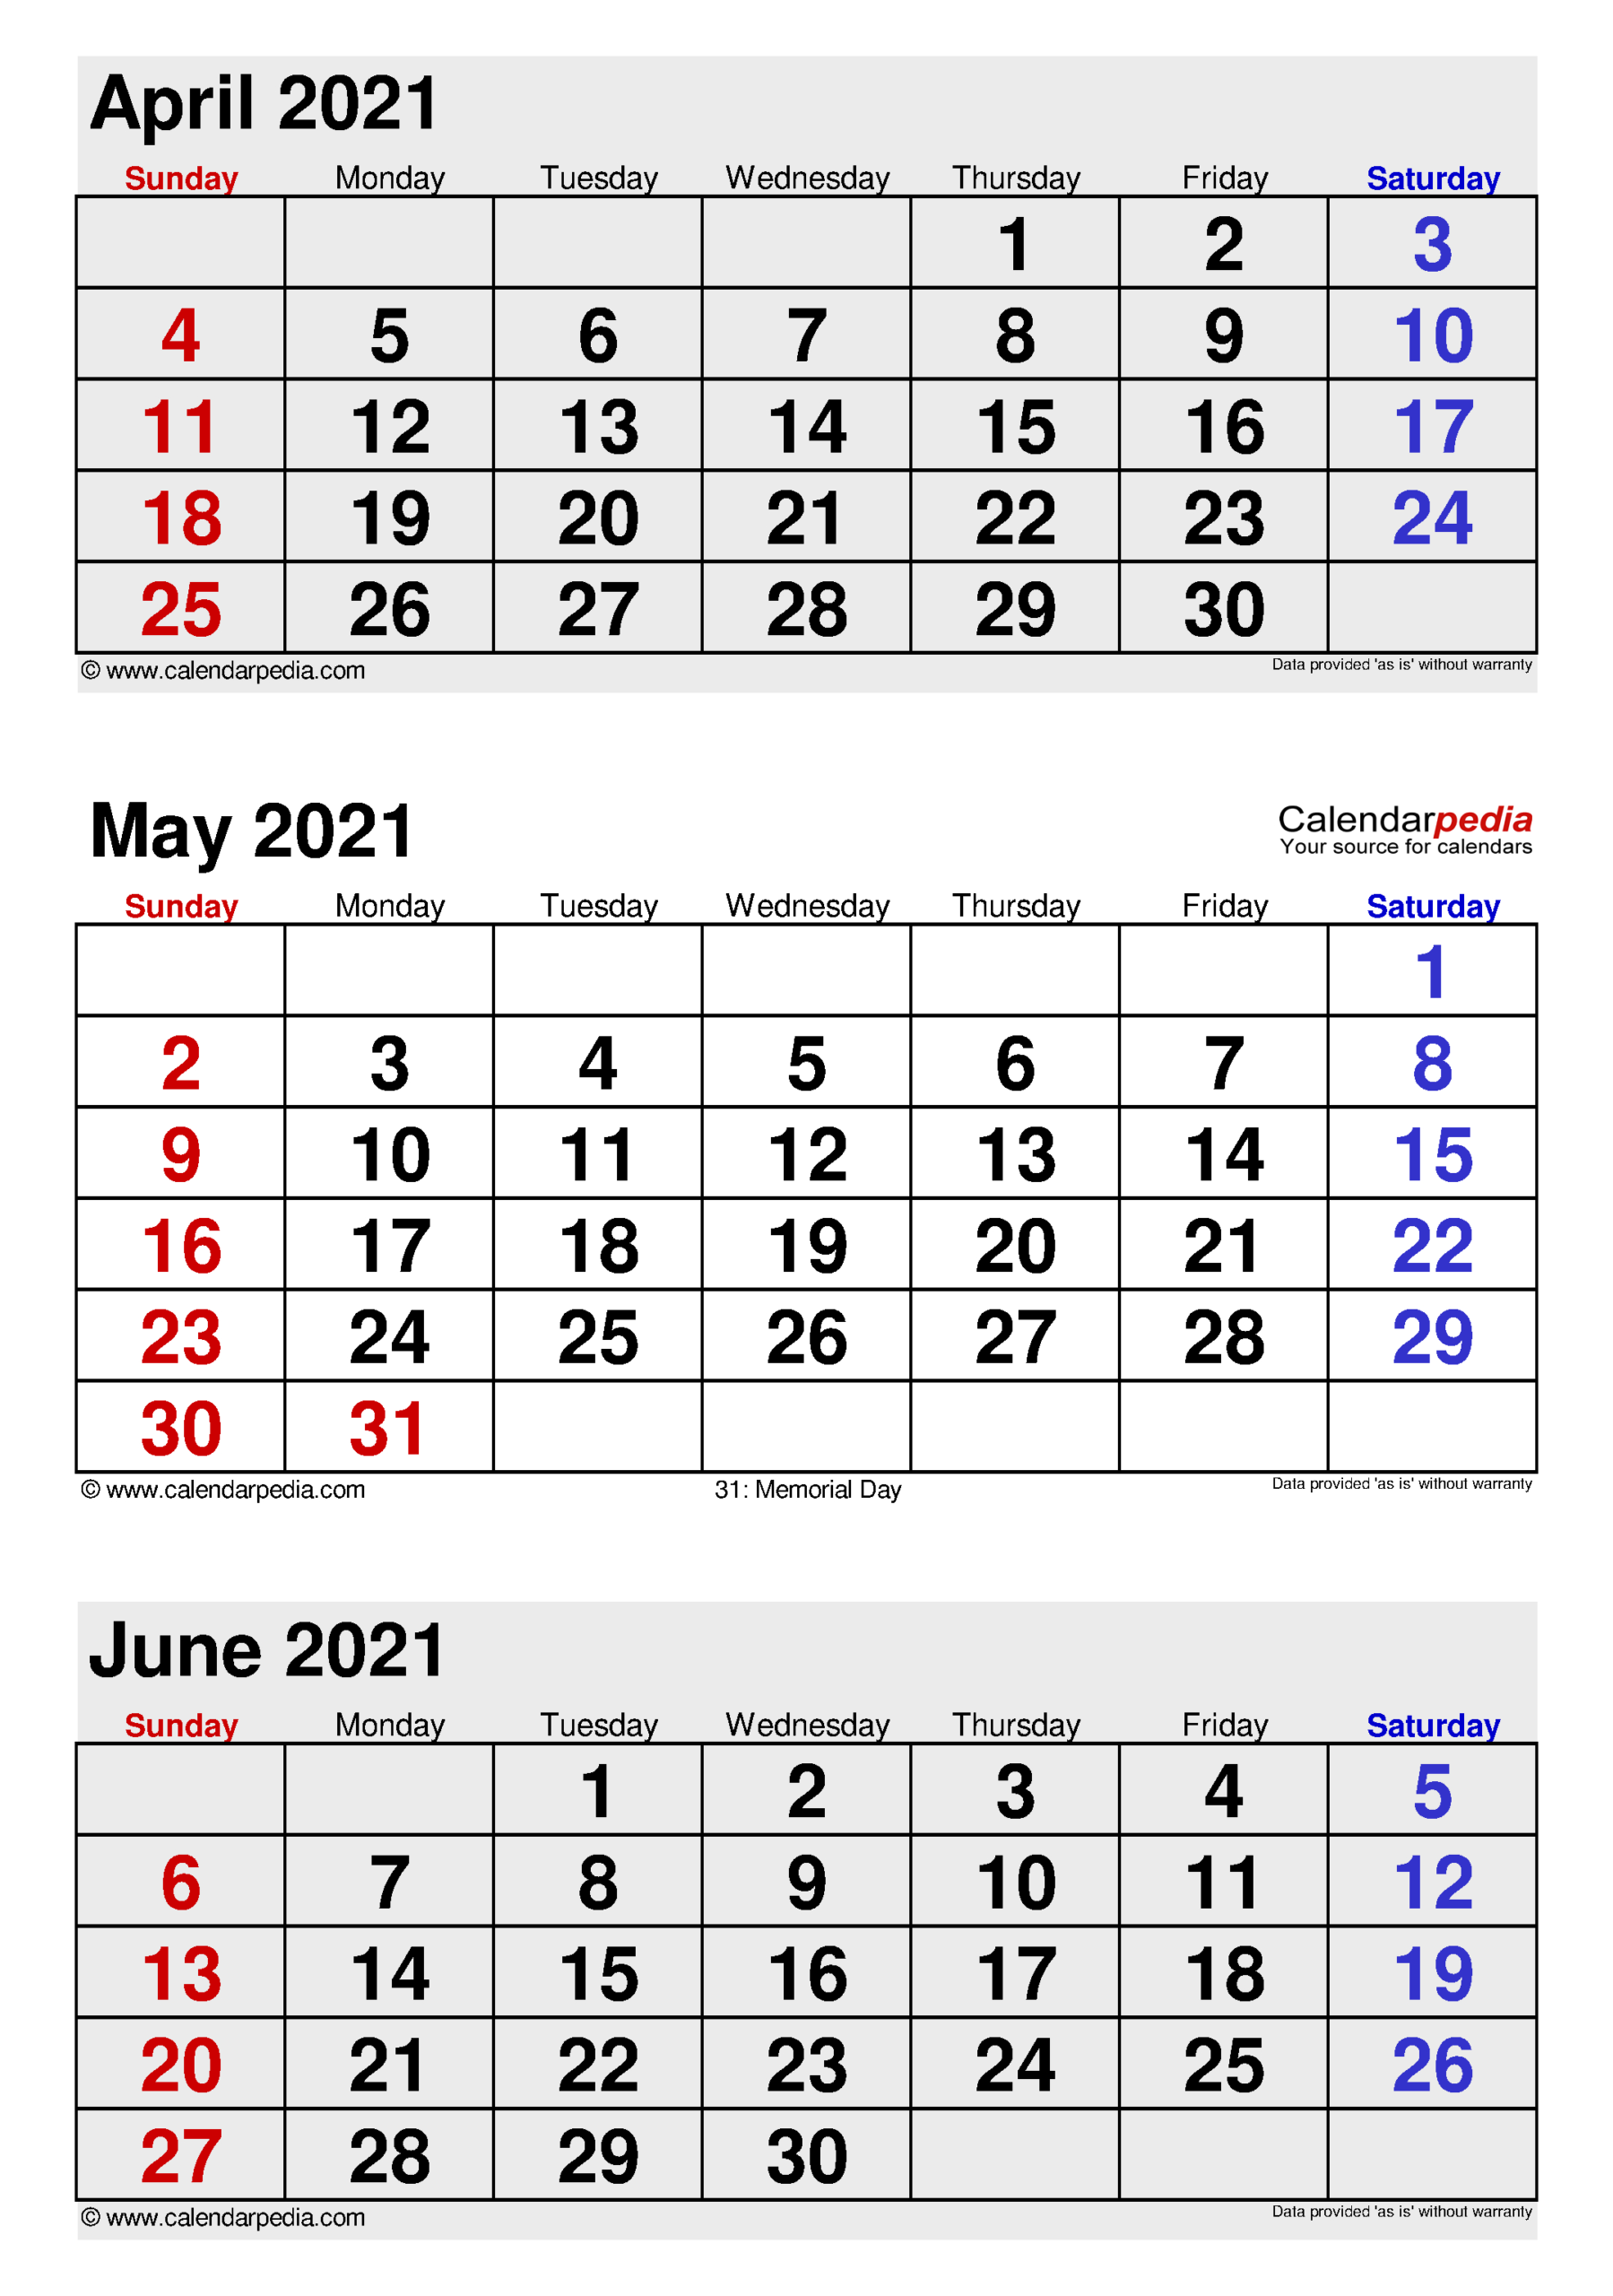 May 2021 Calendar | Templates For Word, Excel And Pdf